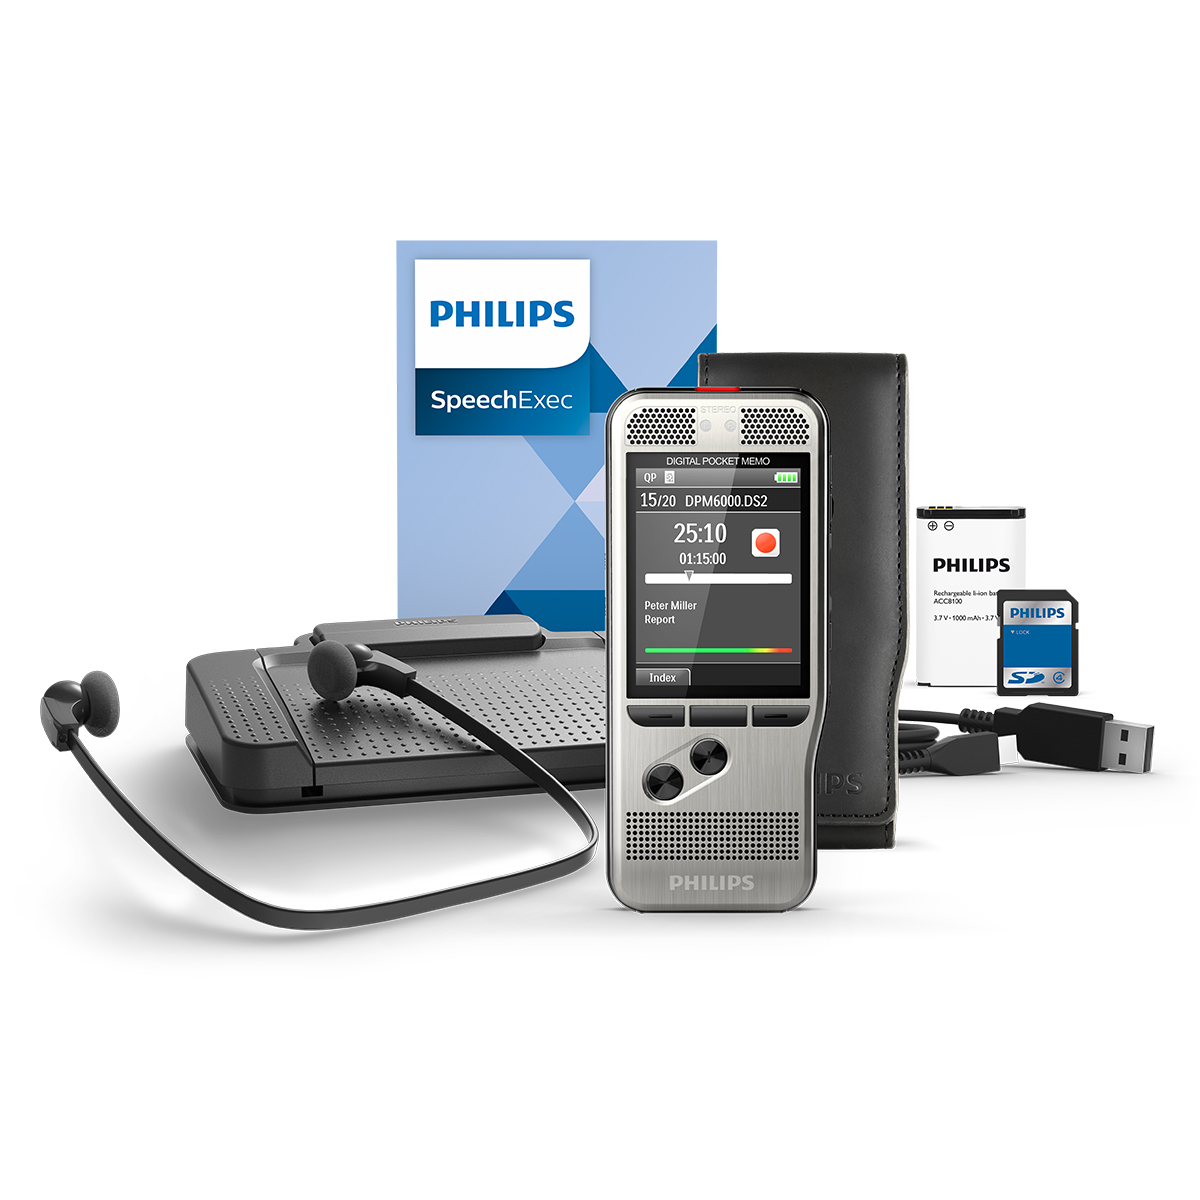 Philips DPM6700 Push Button Memo with SpeechExec 11 Transcription Set